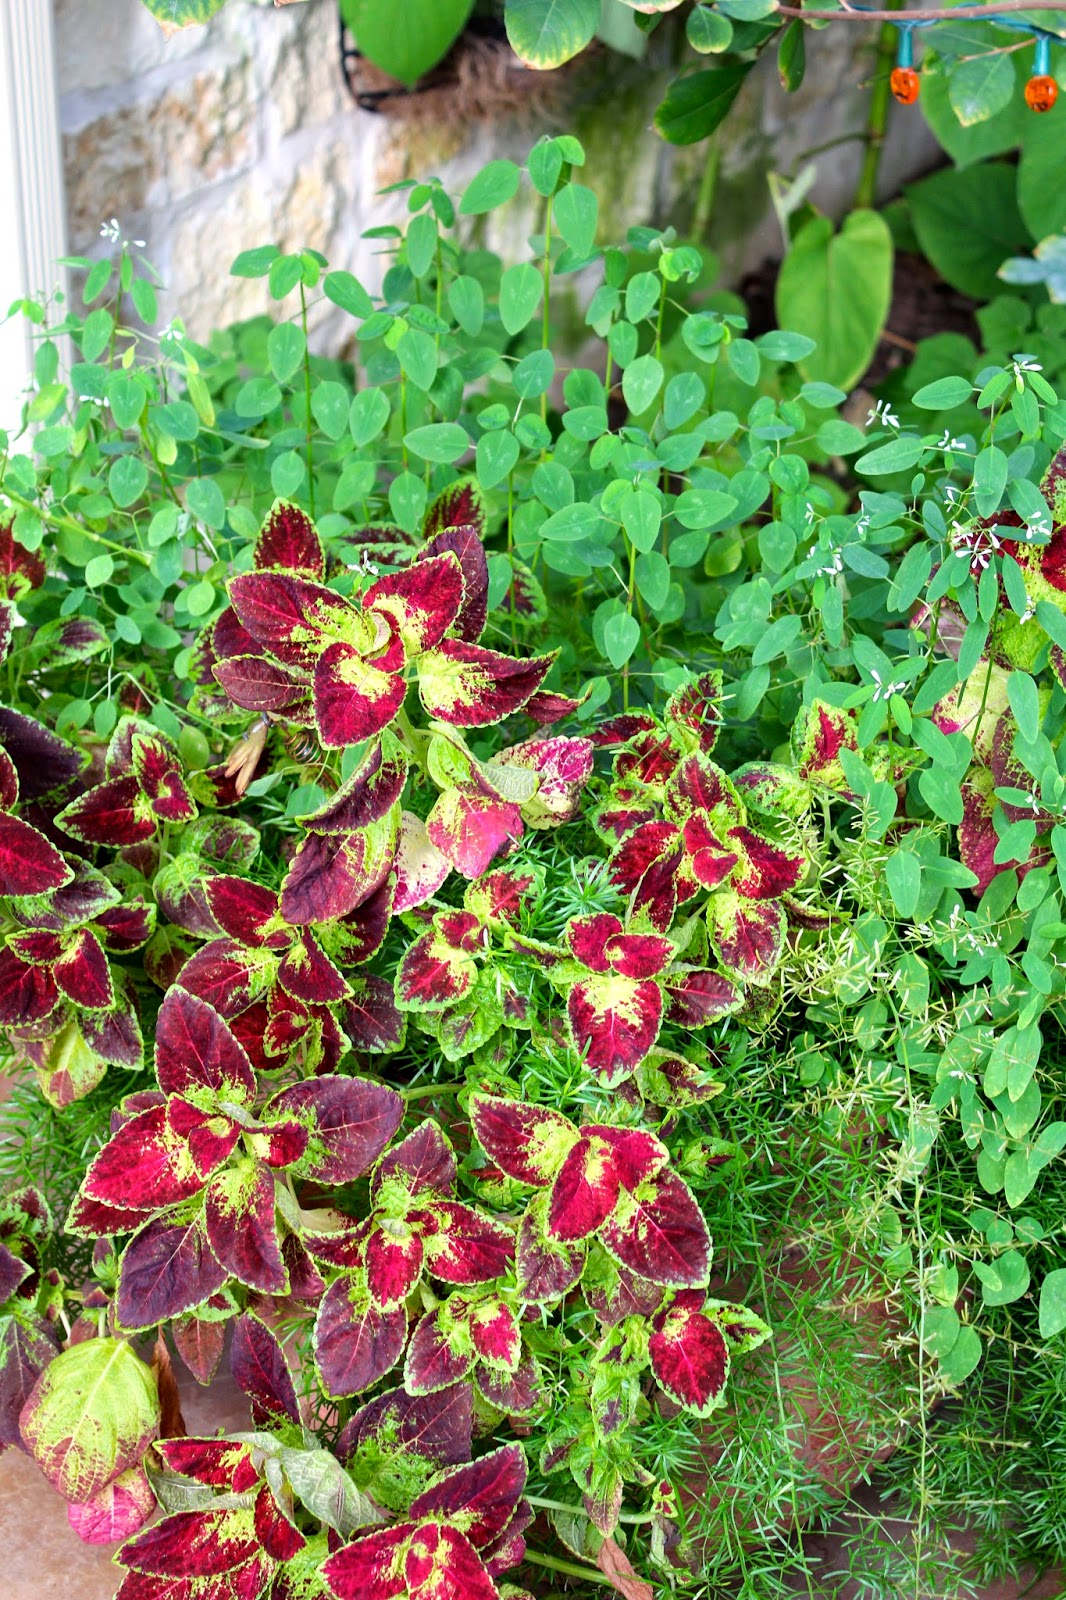 While Most Coleus Are Shade Plants There New Sun Loving Varieties That You Can Use In Sunny Spots